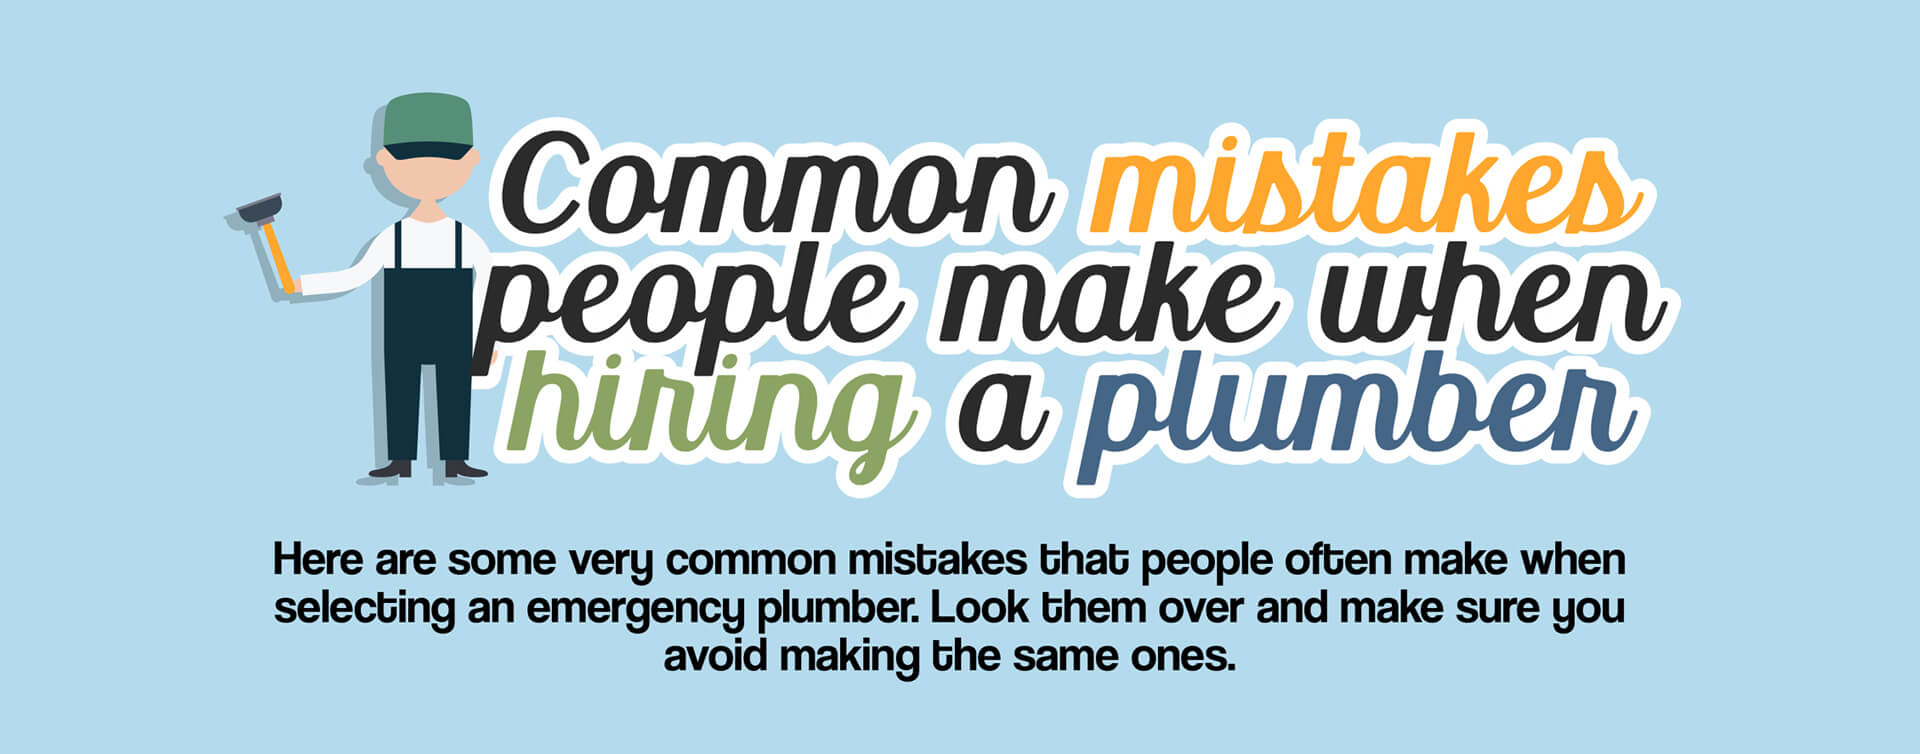 common mistakes people make when hiring a plumber banner